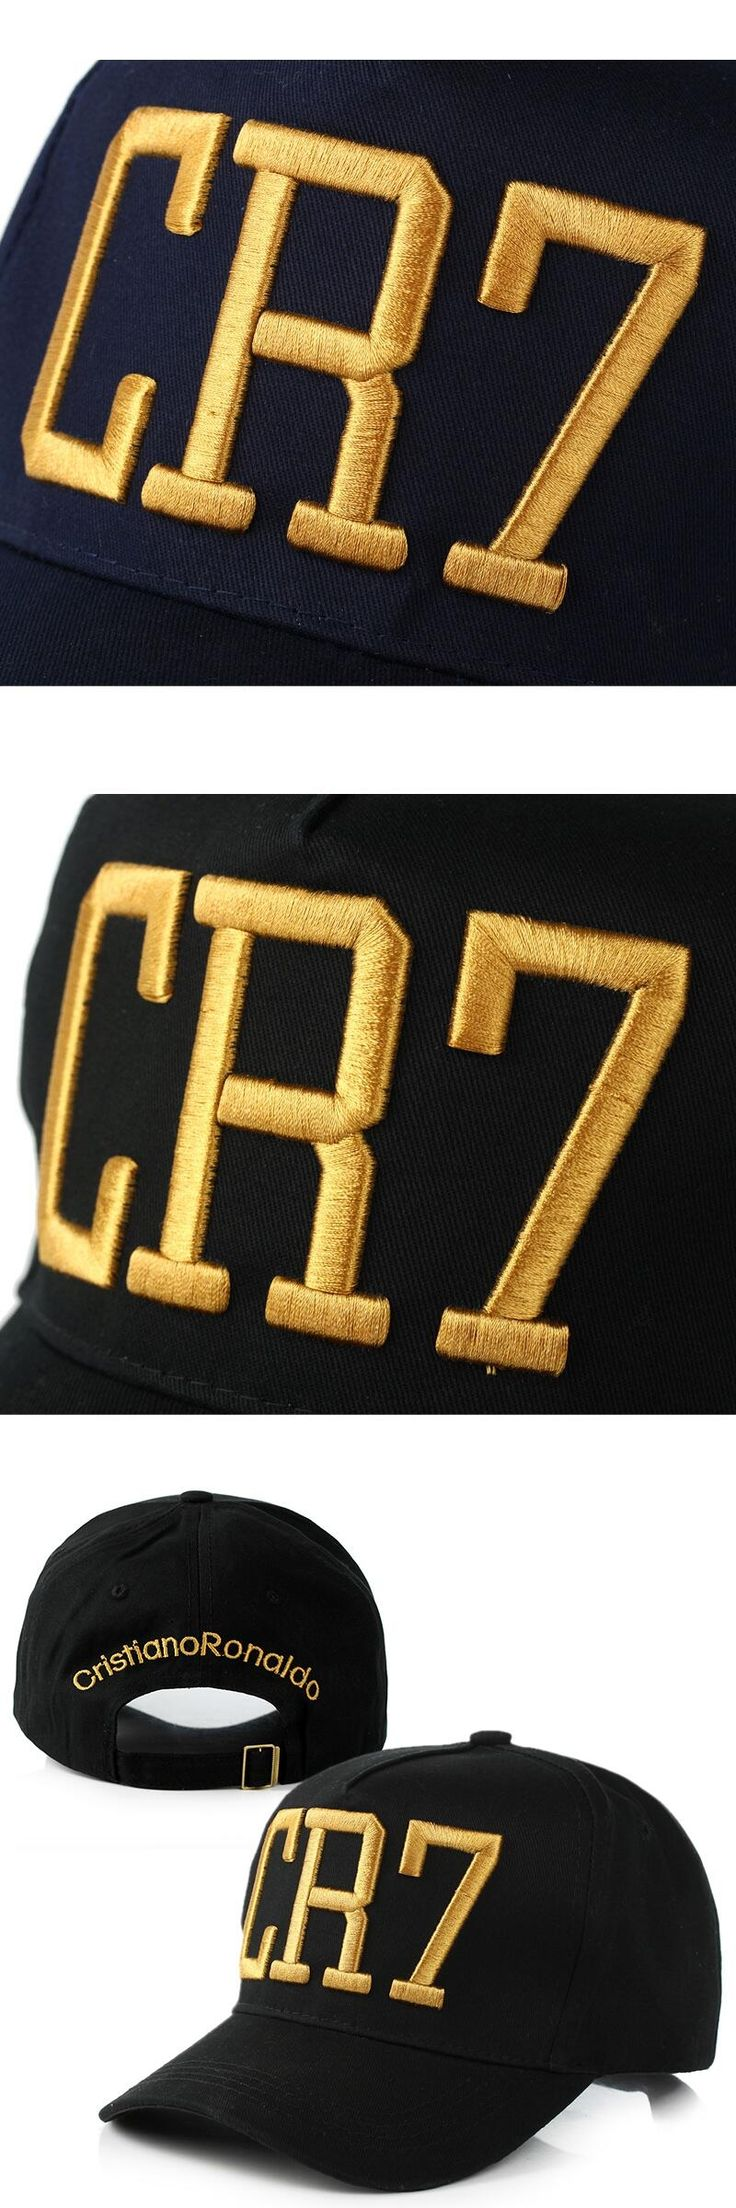 Newest Style Cristiano Ronaldo CR7 Hats Baseball Cap Hip Hop Caps Snapback Hats for Men Women Curved Eaves 2017 Dad